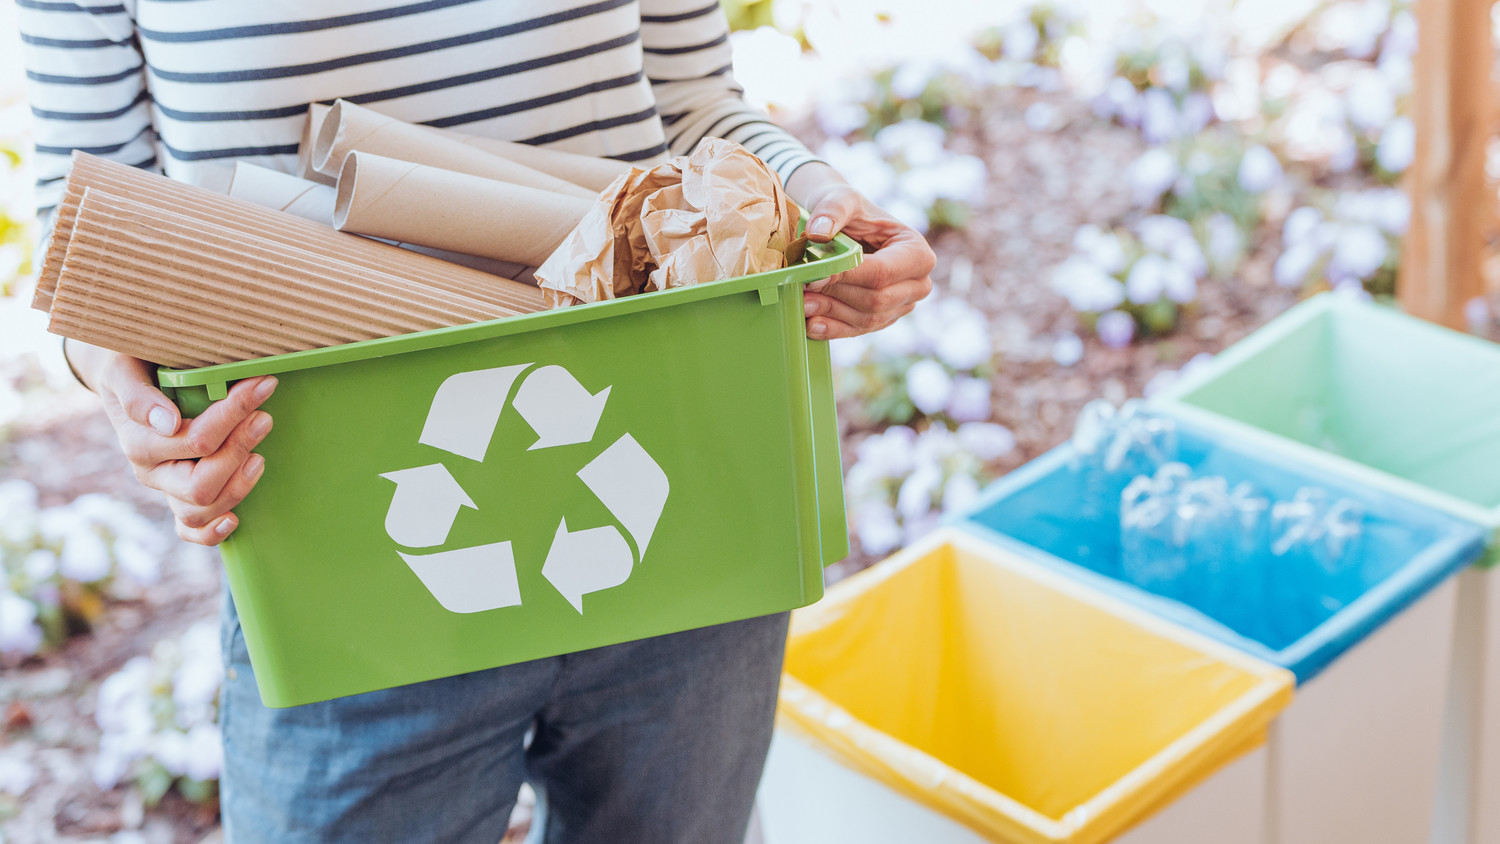 What's the Difference Between Biodegradable, Compostable, and Recyclable?